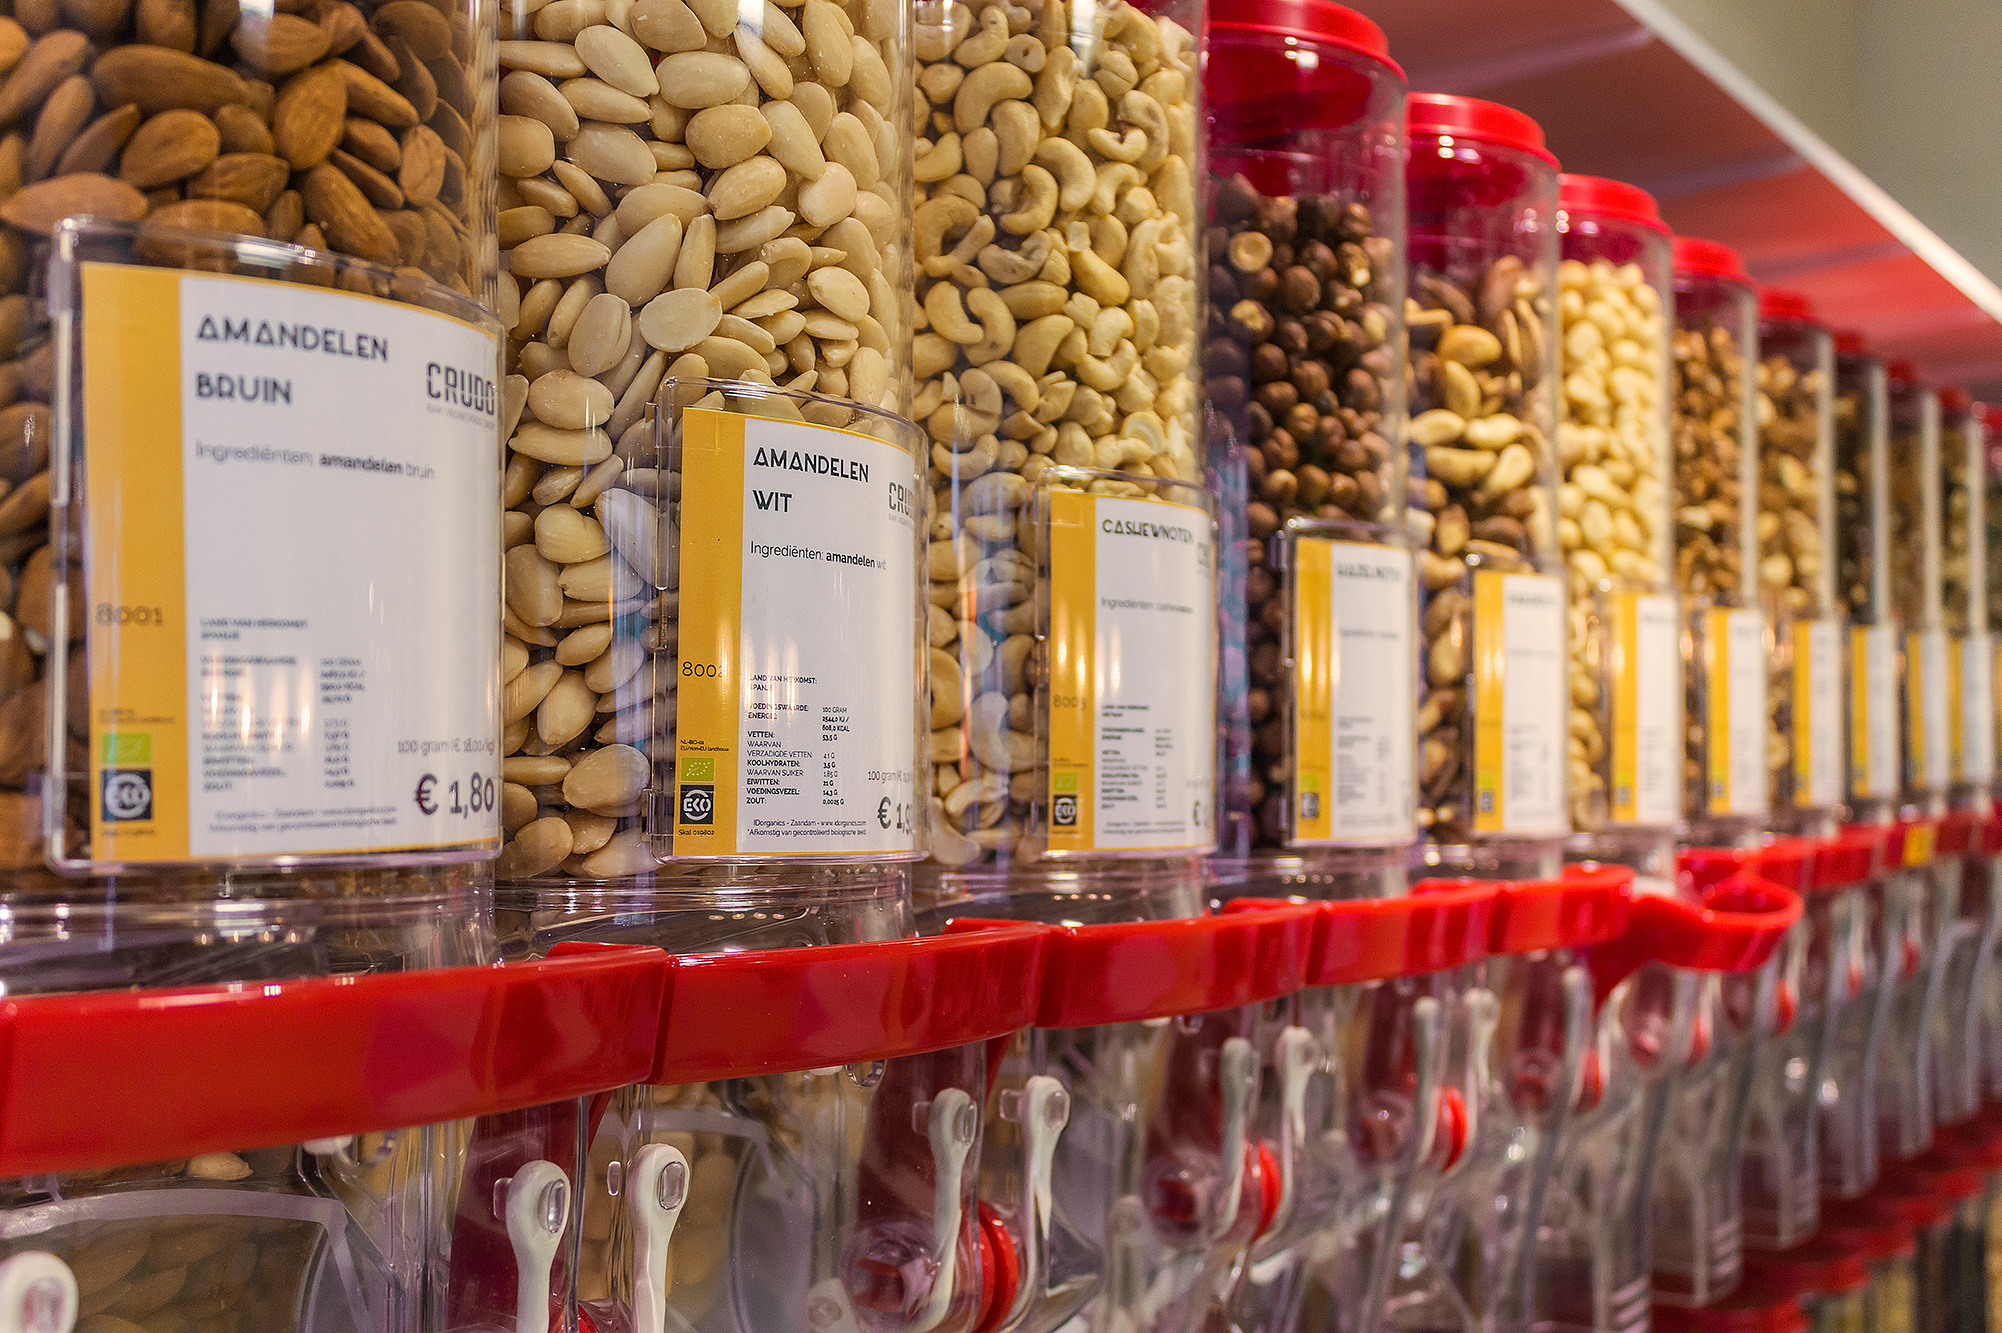 Get your own mix of nuts from the bulkbins at Crudo. © Mike van Putten